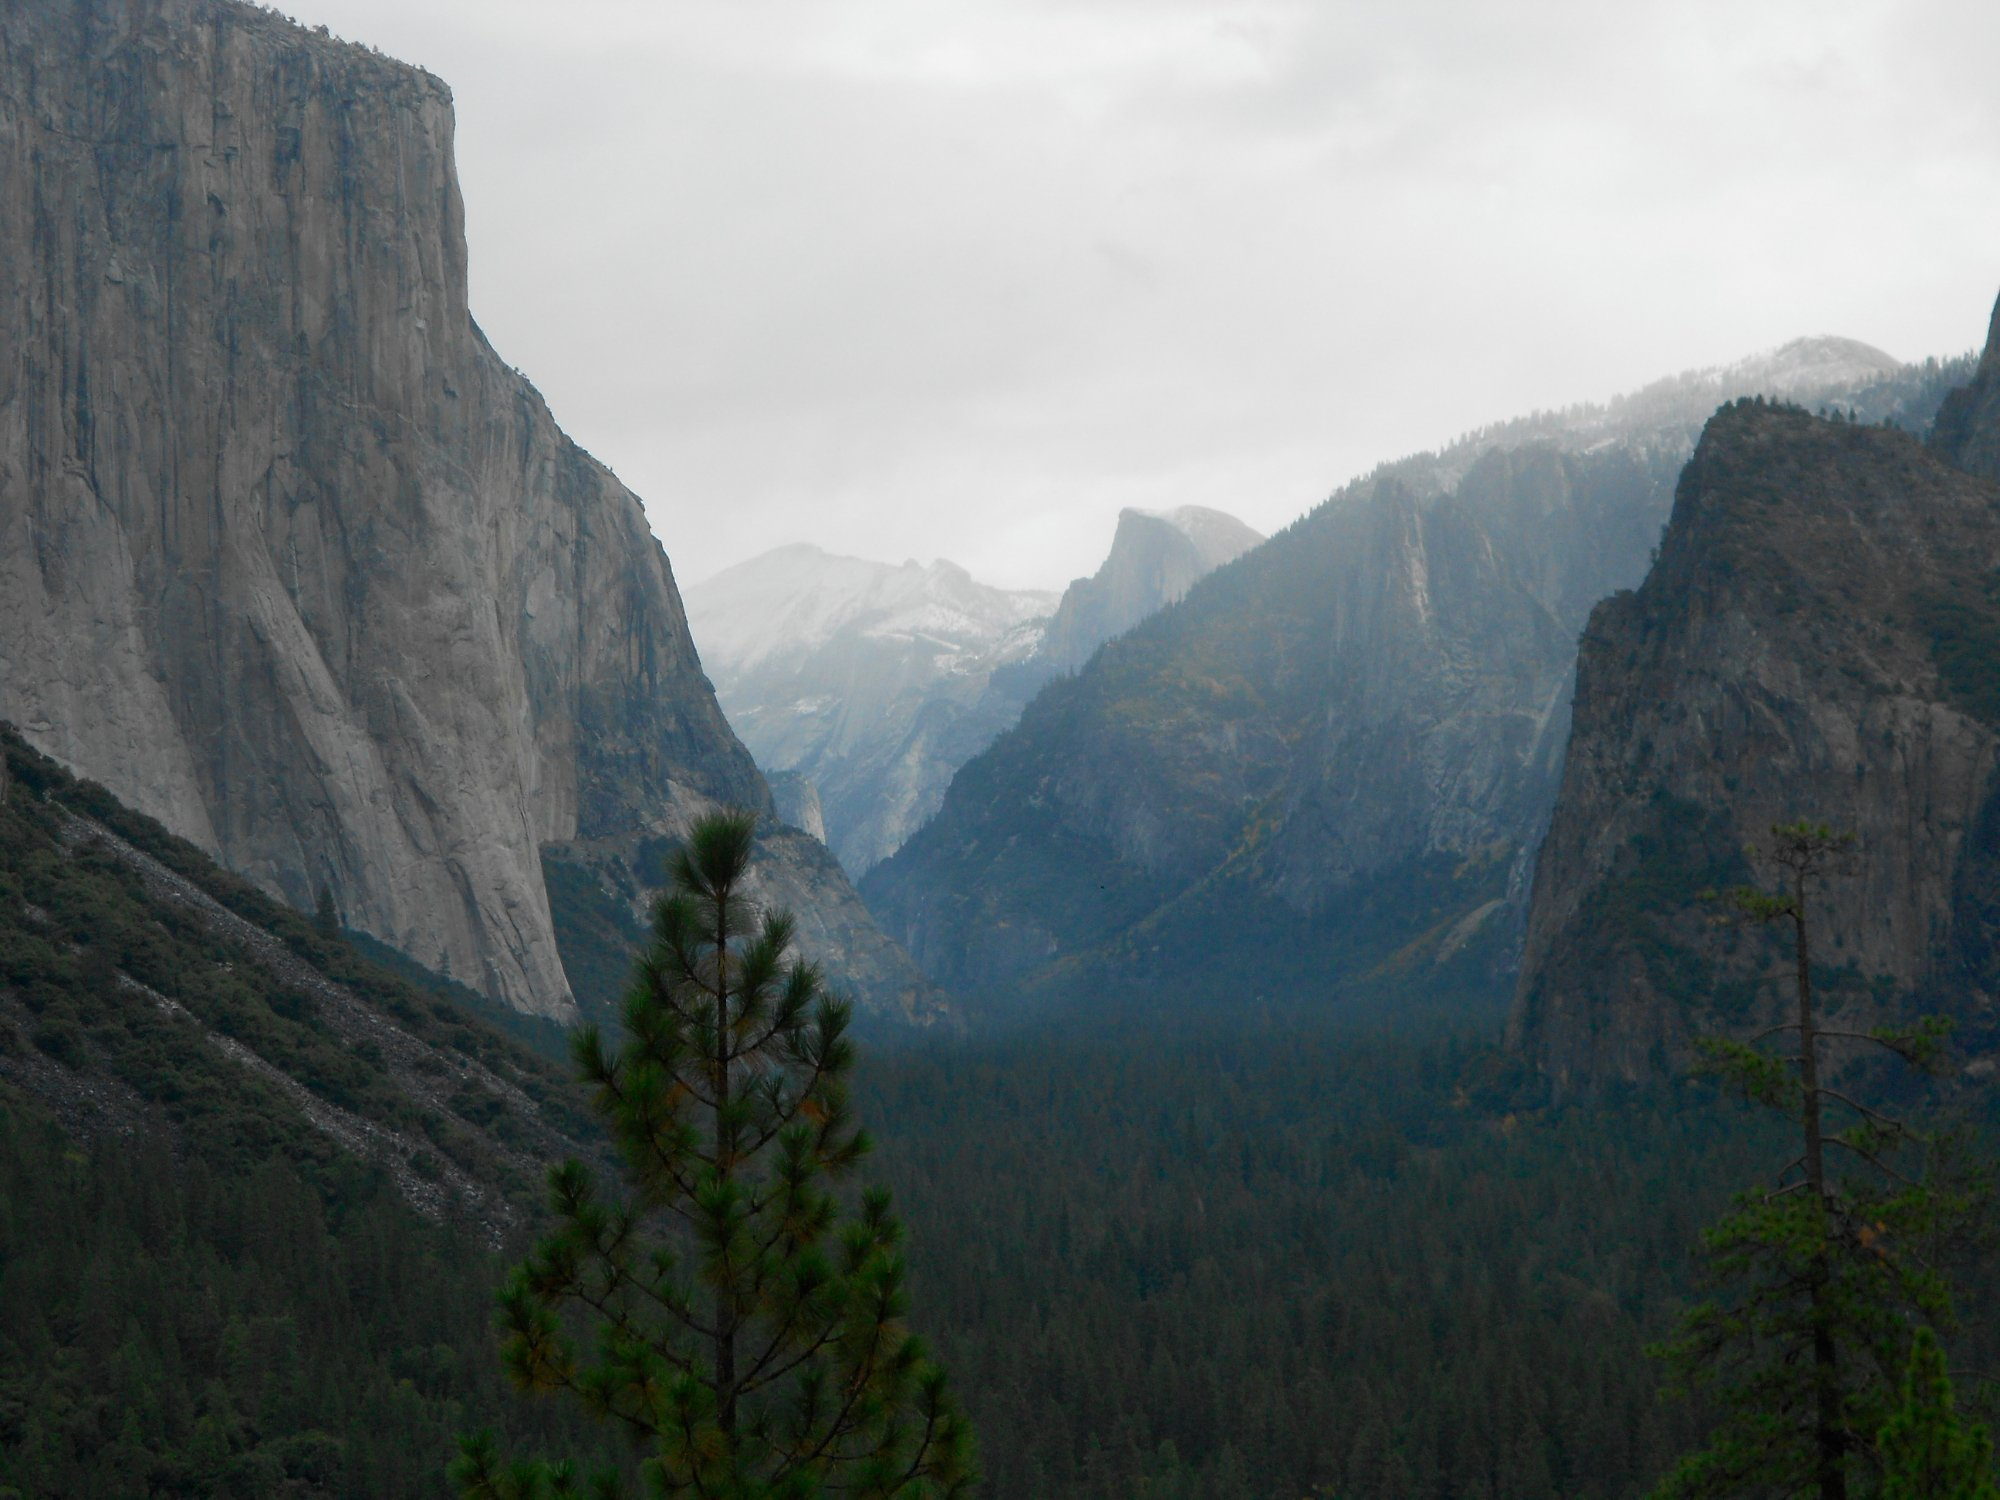 El cap and a distant Half Dome from Yosemite National Park